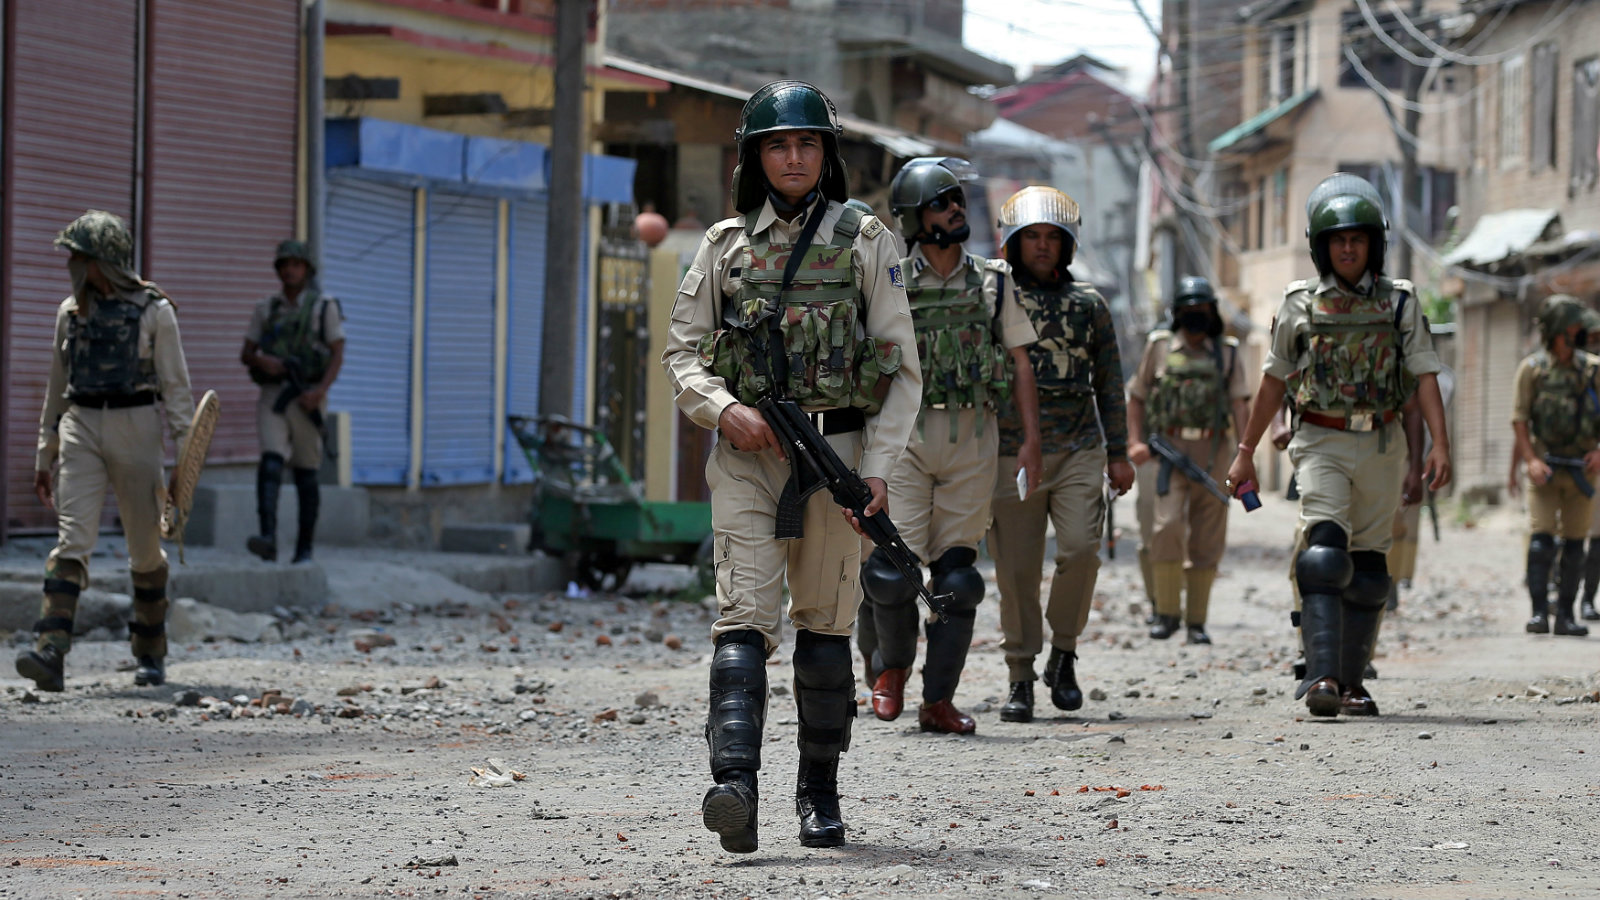 The jingoistic tweet about Kashmir has come just at a time when India is trying to soothe nerves there.